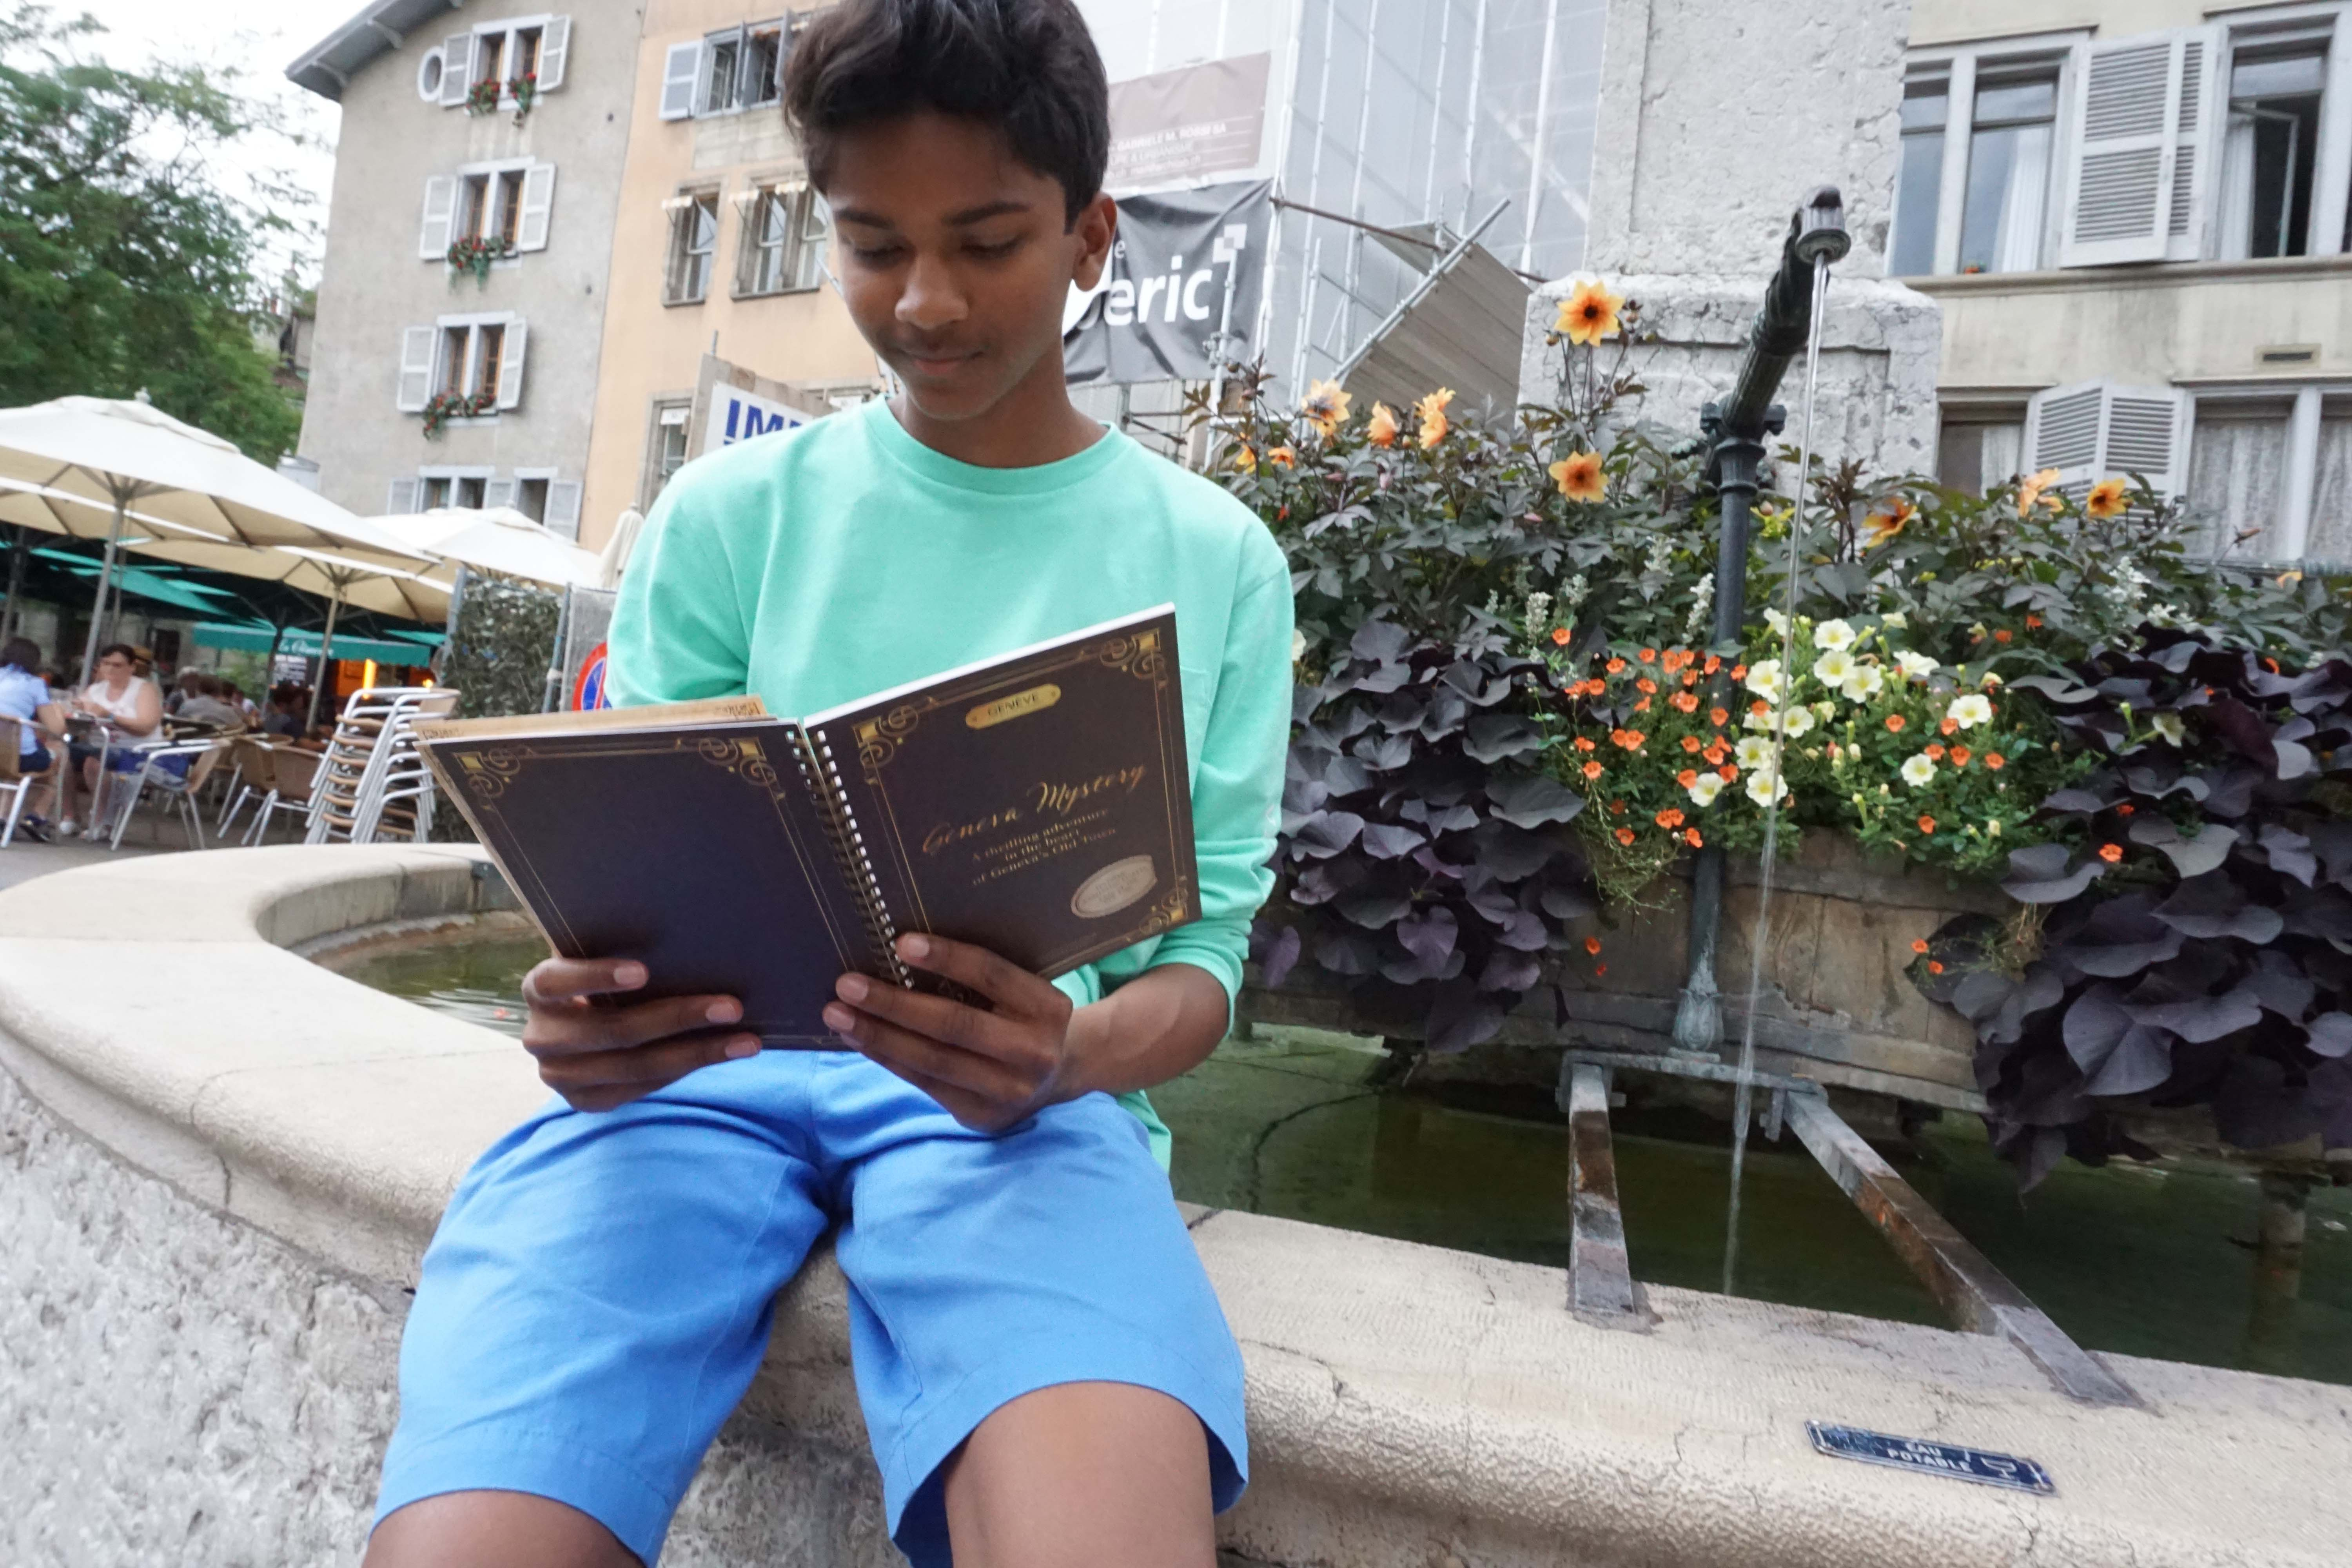 Solving the Geneva mystery in Old Town - Top things to do in Geneva with kids